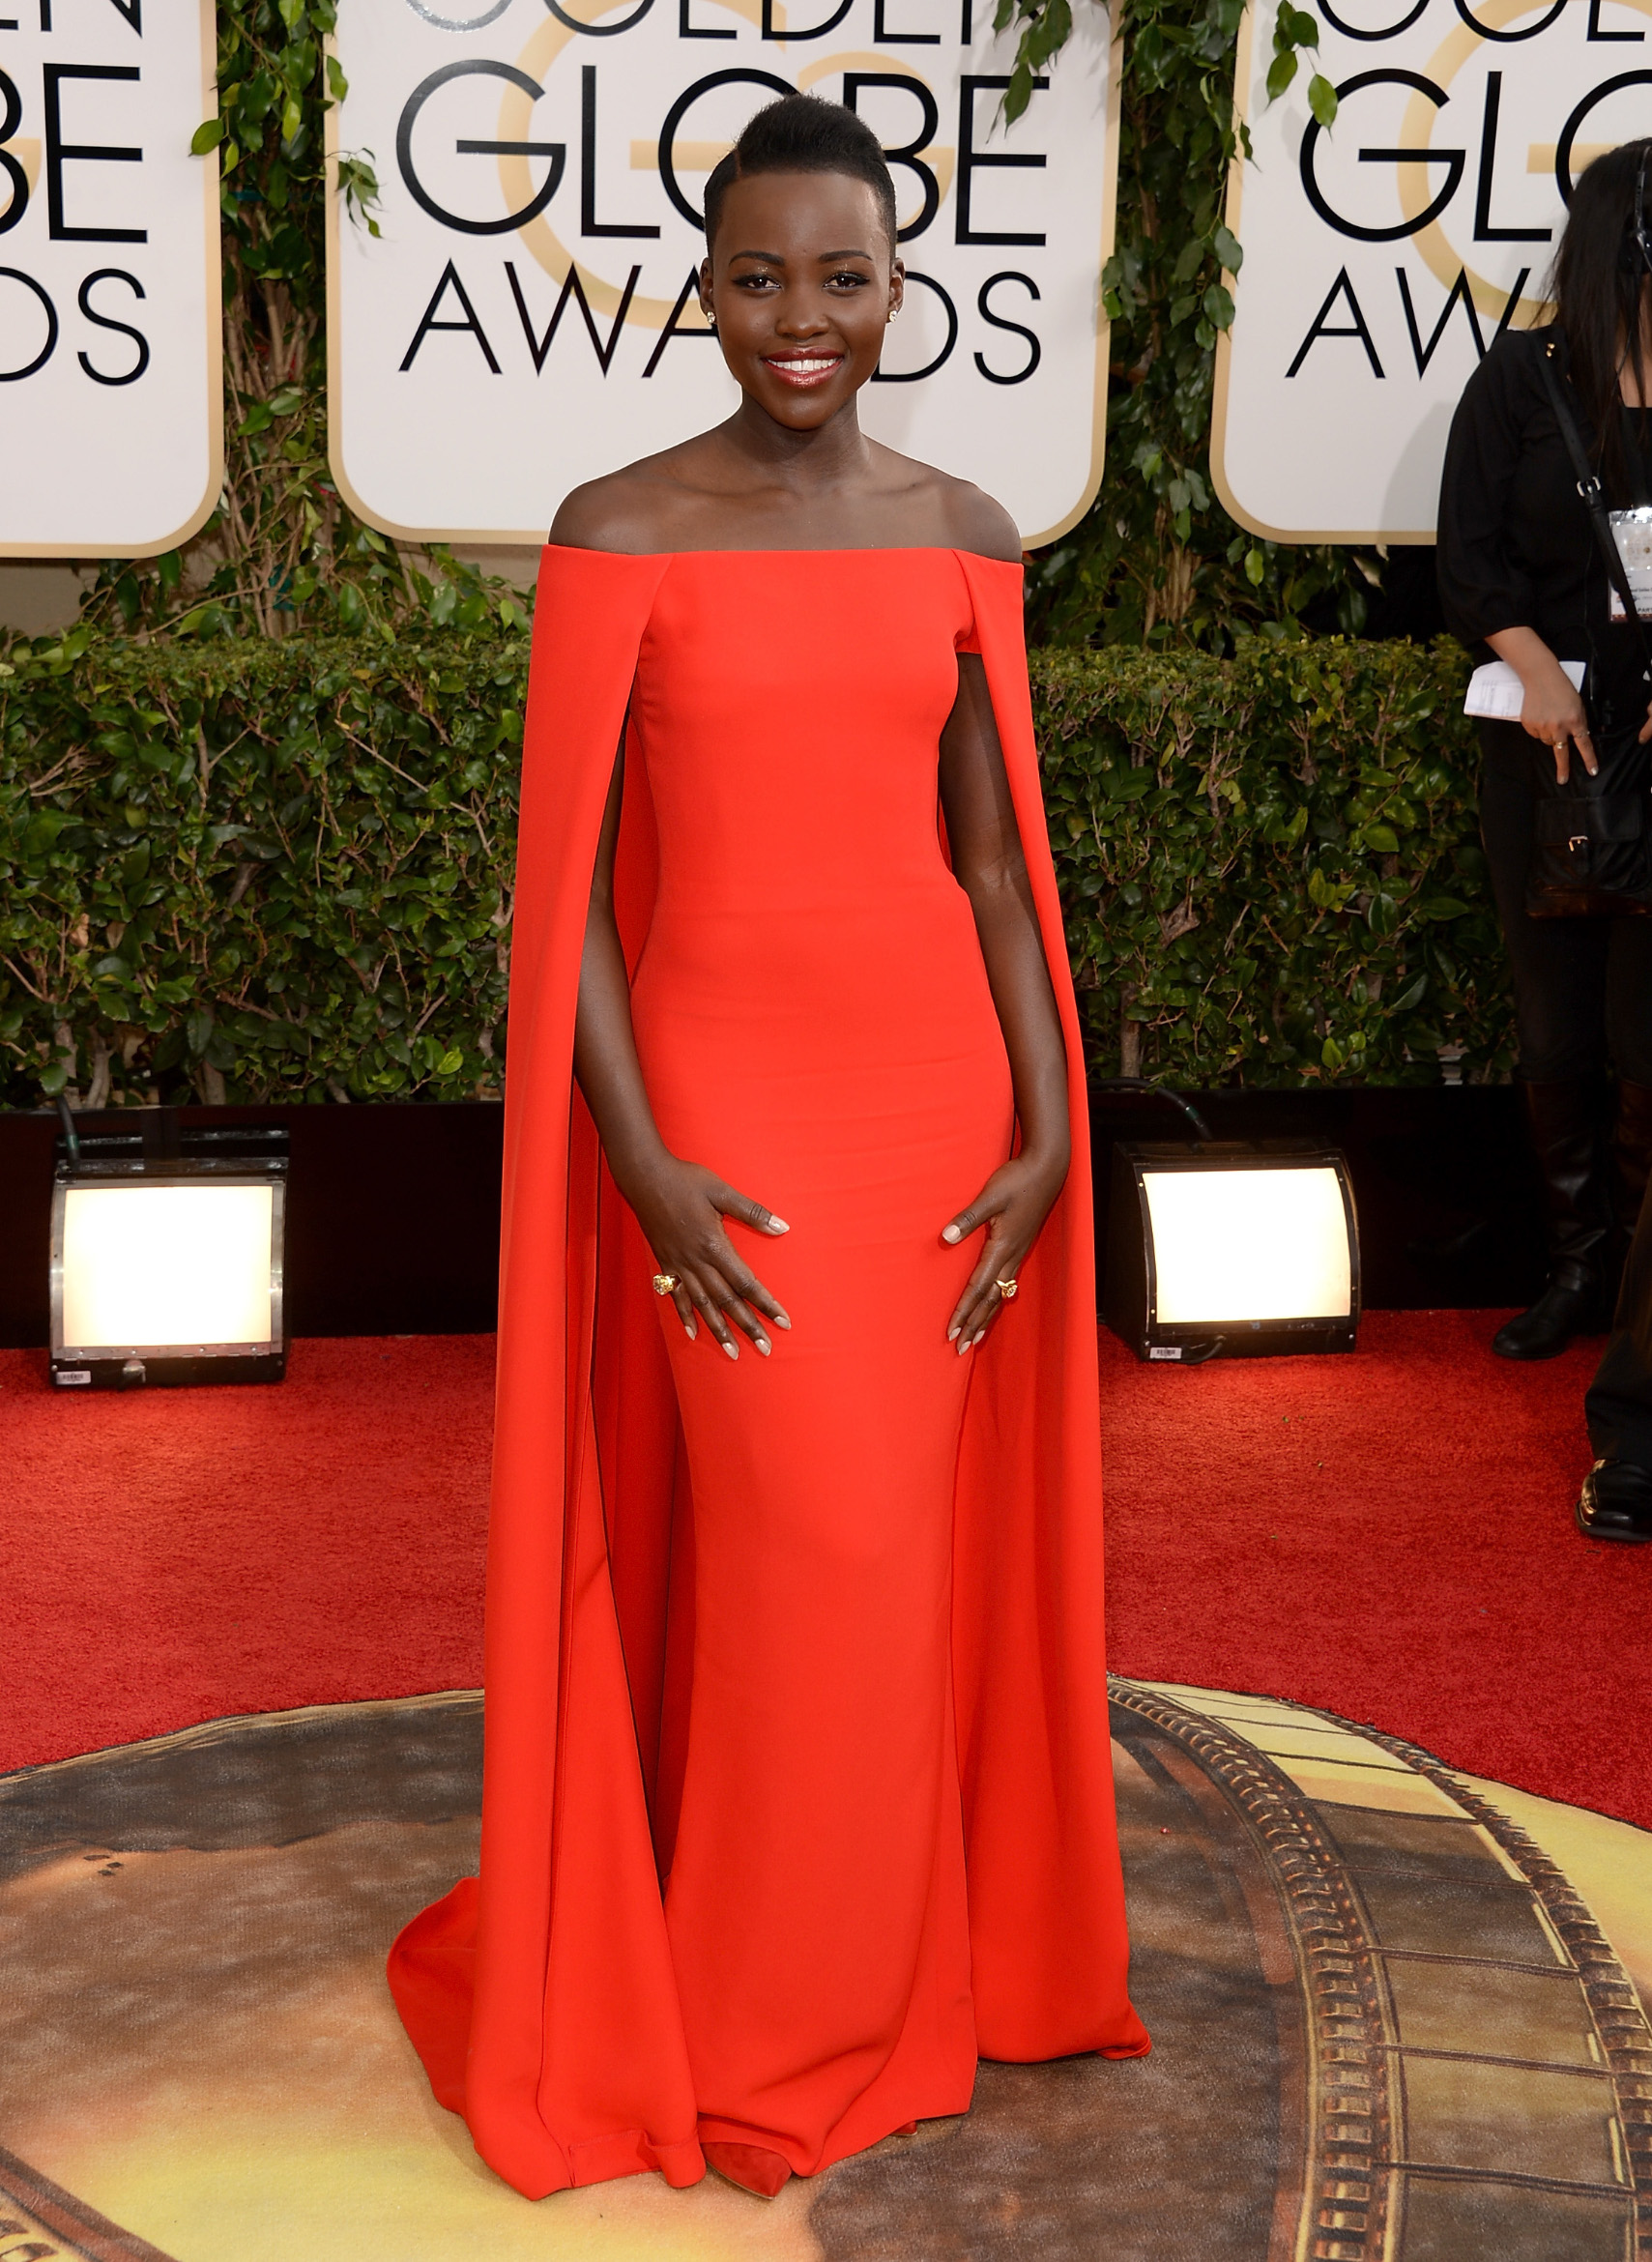 BEVERLY HILLS, CA - JANUARY 12:  Actress Lupita Nyong'o attends the 71st Annual Golden Globe Awards held at The Beverly Hilton Hotel on January 12, 2014 in Beverly Hills, California.  (Photo by Jason Merritt/Getty Images)